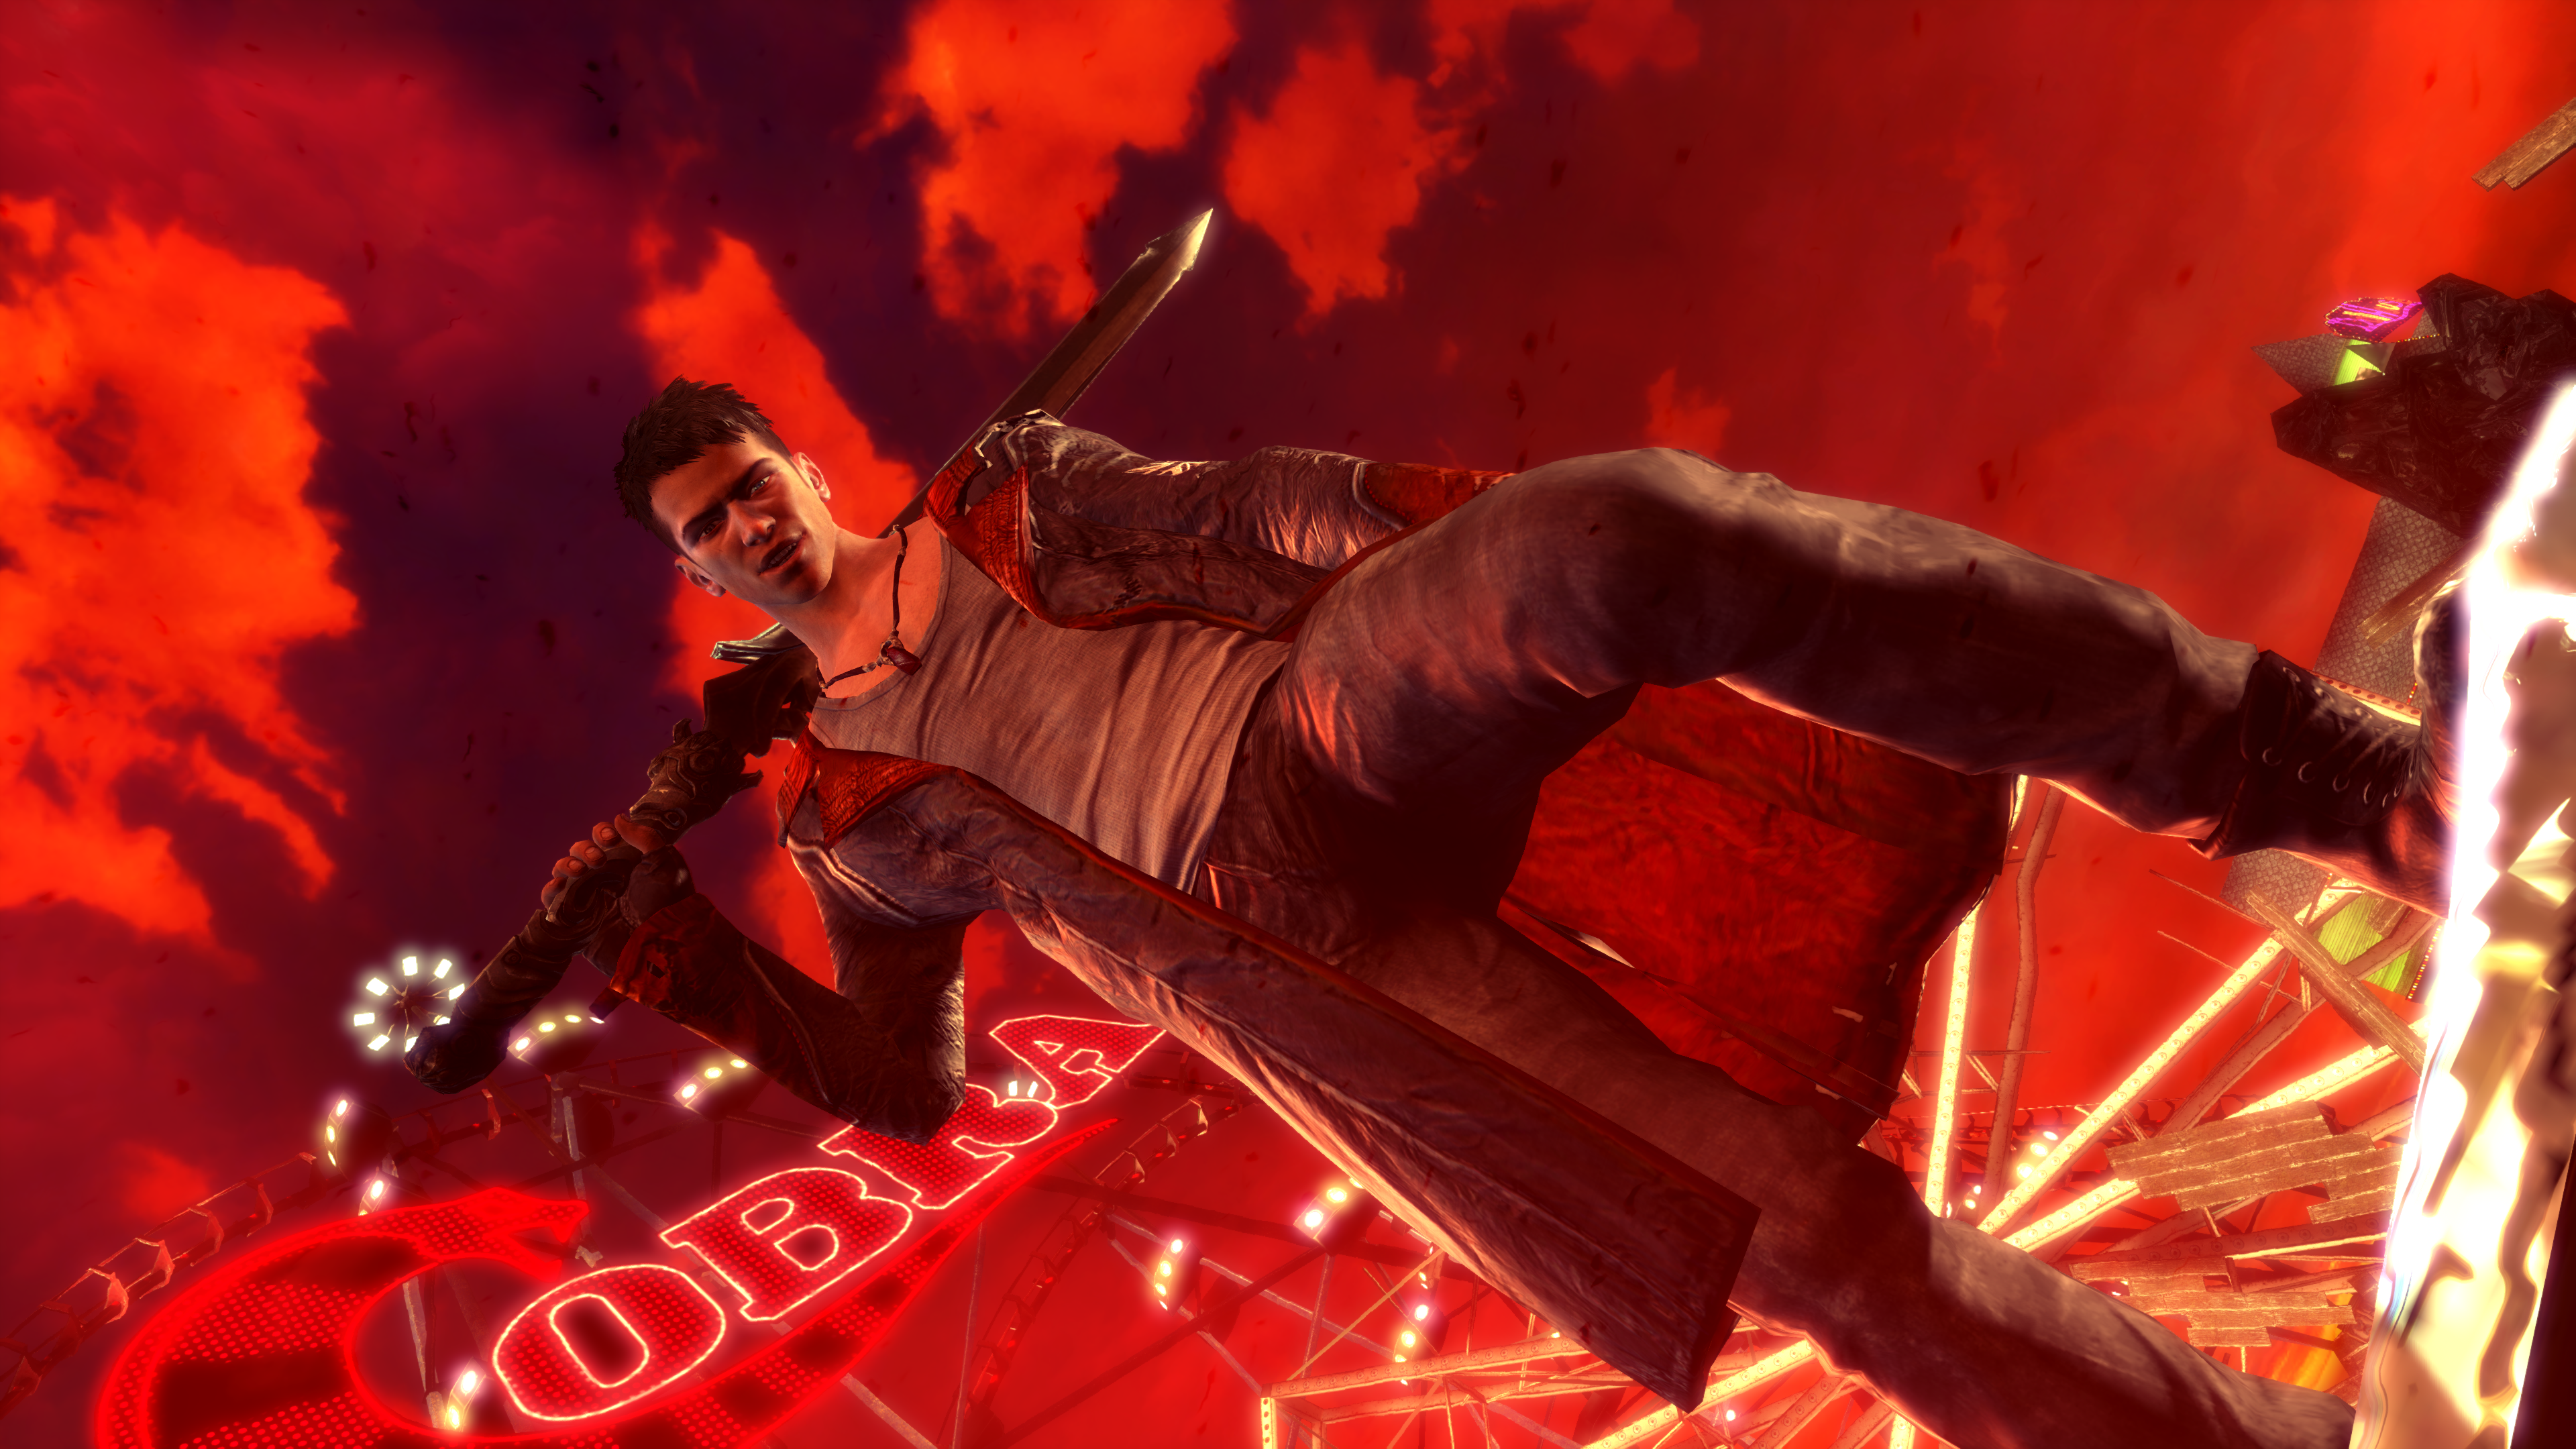 Devil May Cry 4k Ultra Hd Wallpaper Background Image 3840x2160